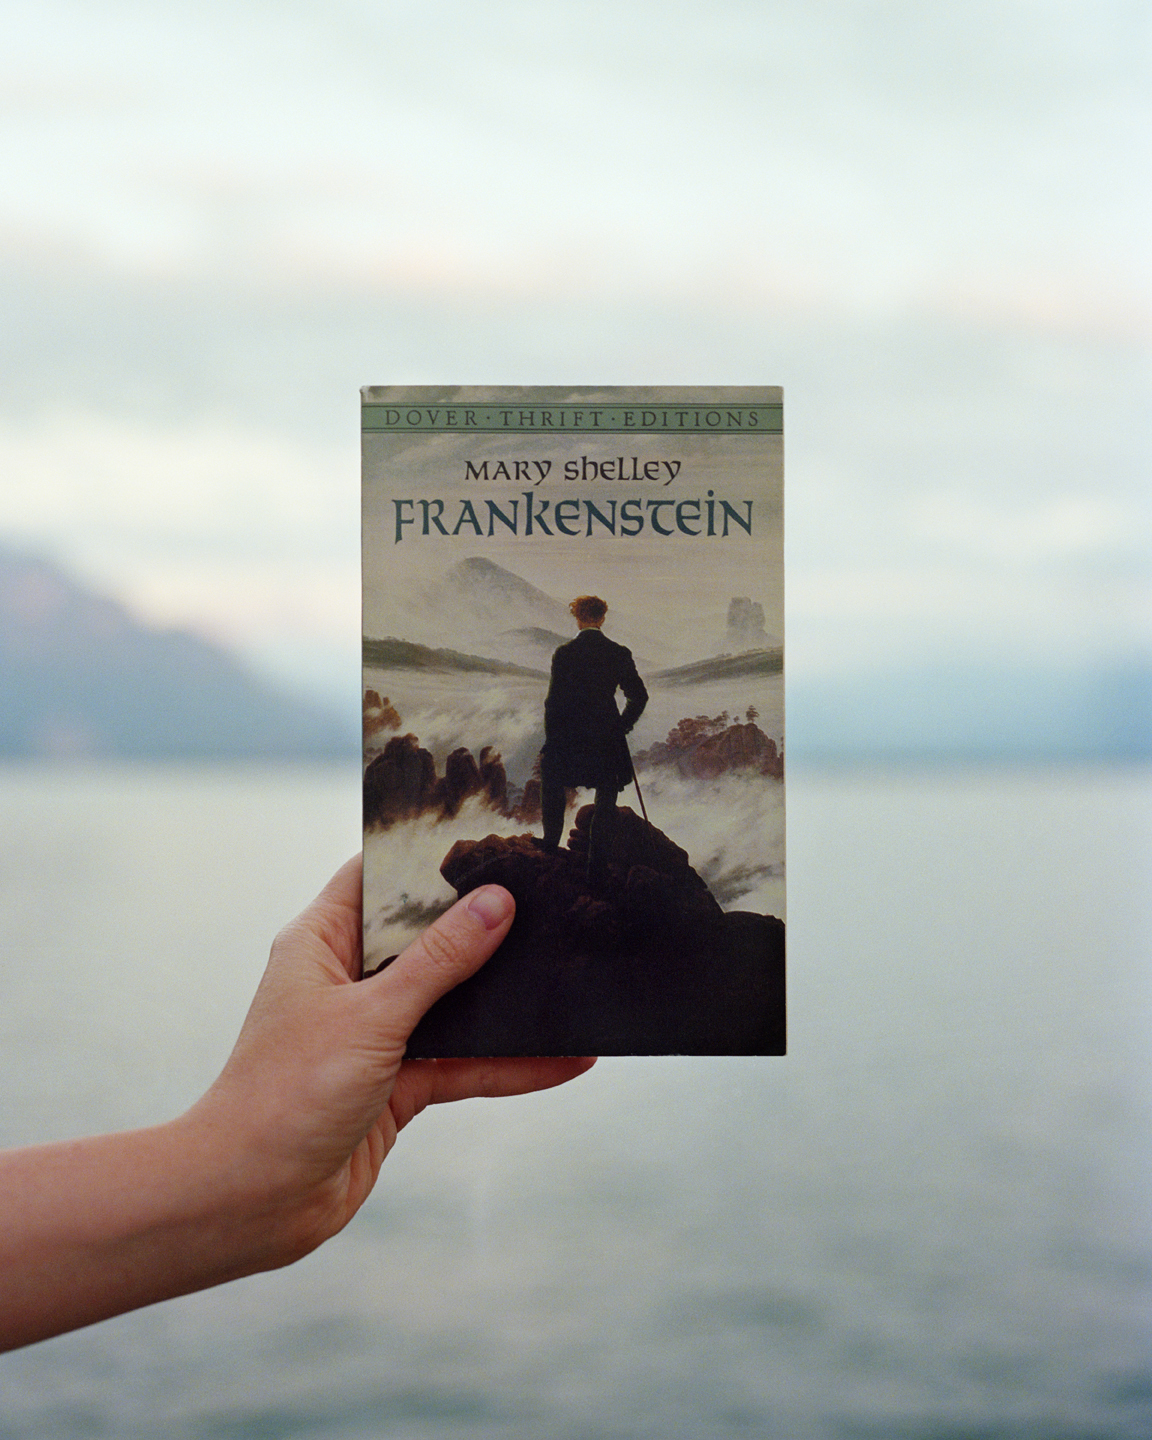 A white woman's hand holds a copy of Mary Shelley's novel Frankenstein, with an image of Caspar David Freidrich's painting Wanderer Above the Sea and Fog as its cover, in front of Lake Geneva.